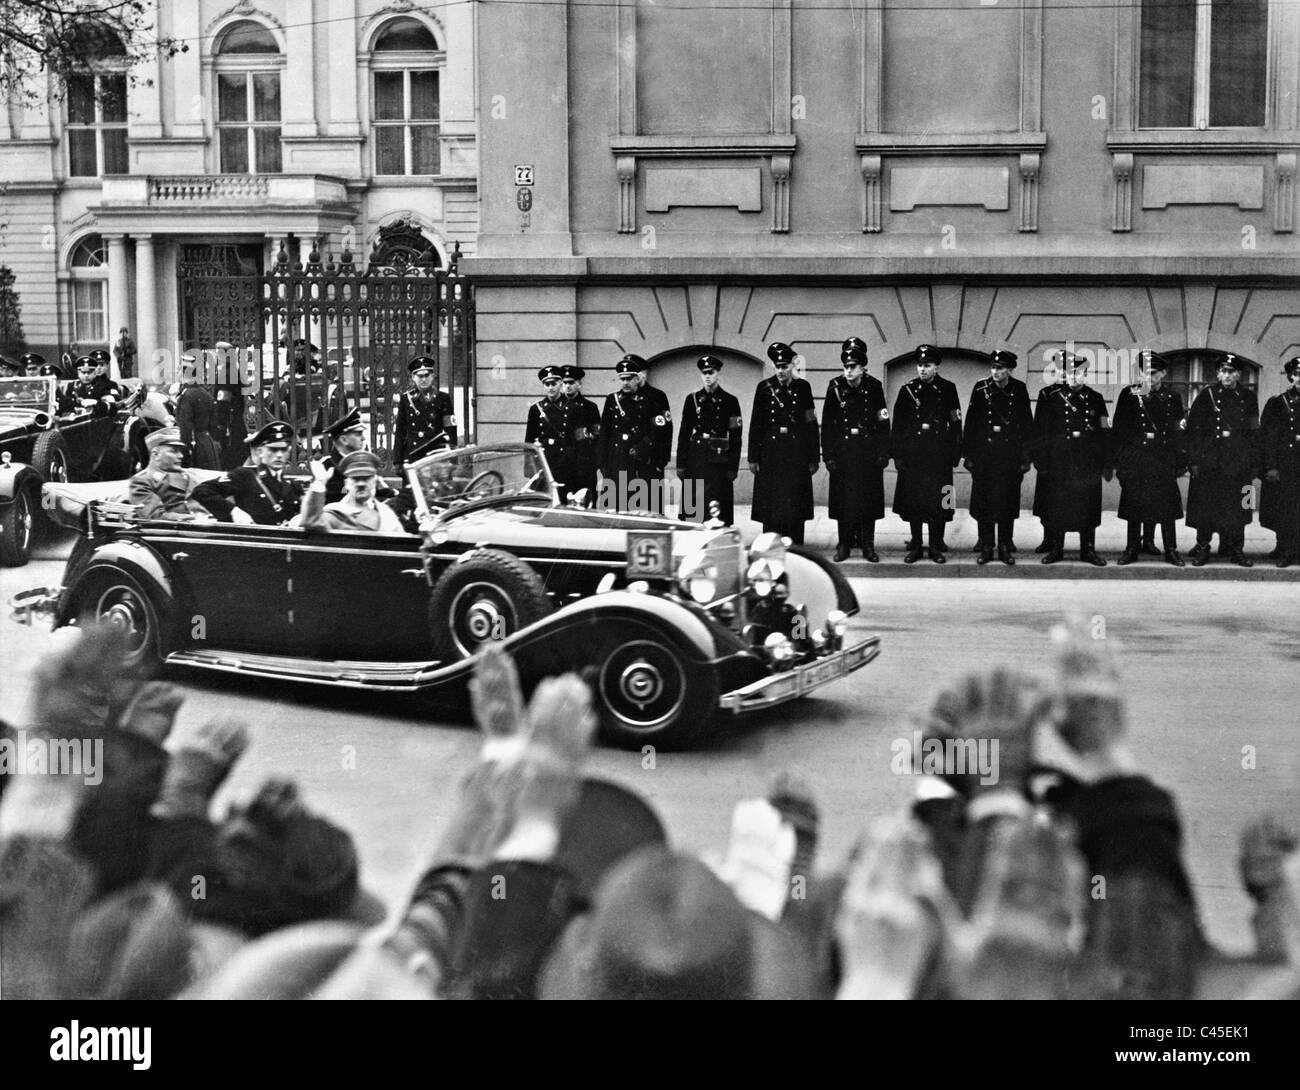 Adolf Hitler on the way to the Reichstag, 1938 - Stock Image